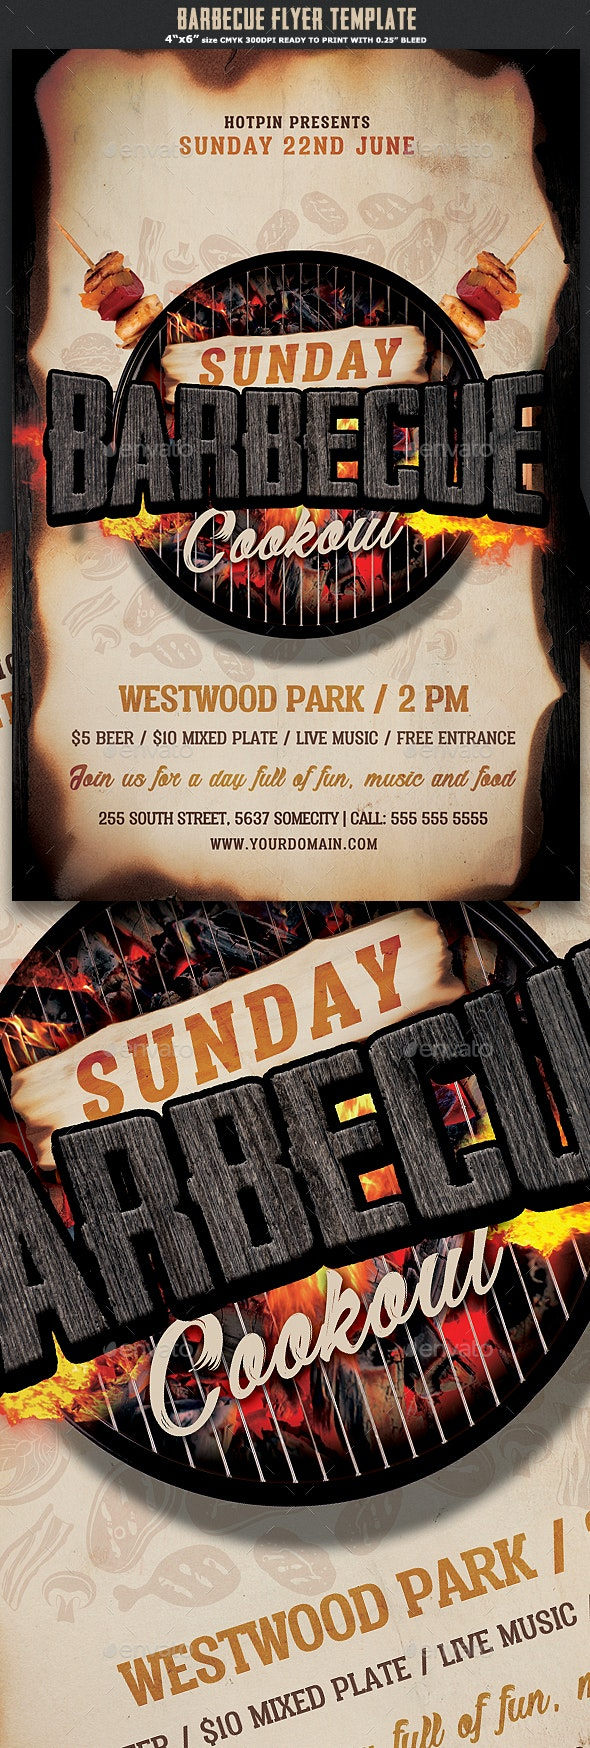 Barbecue Flyer Template - Events Flyers